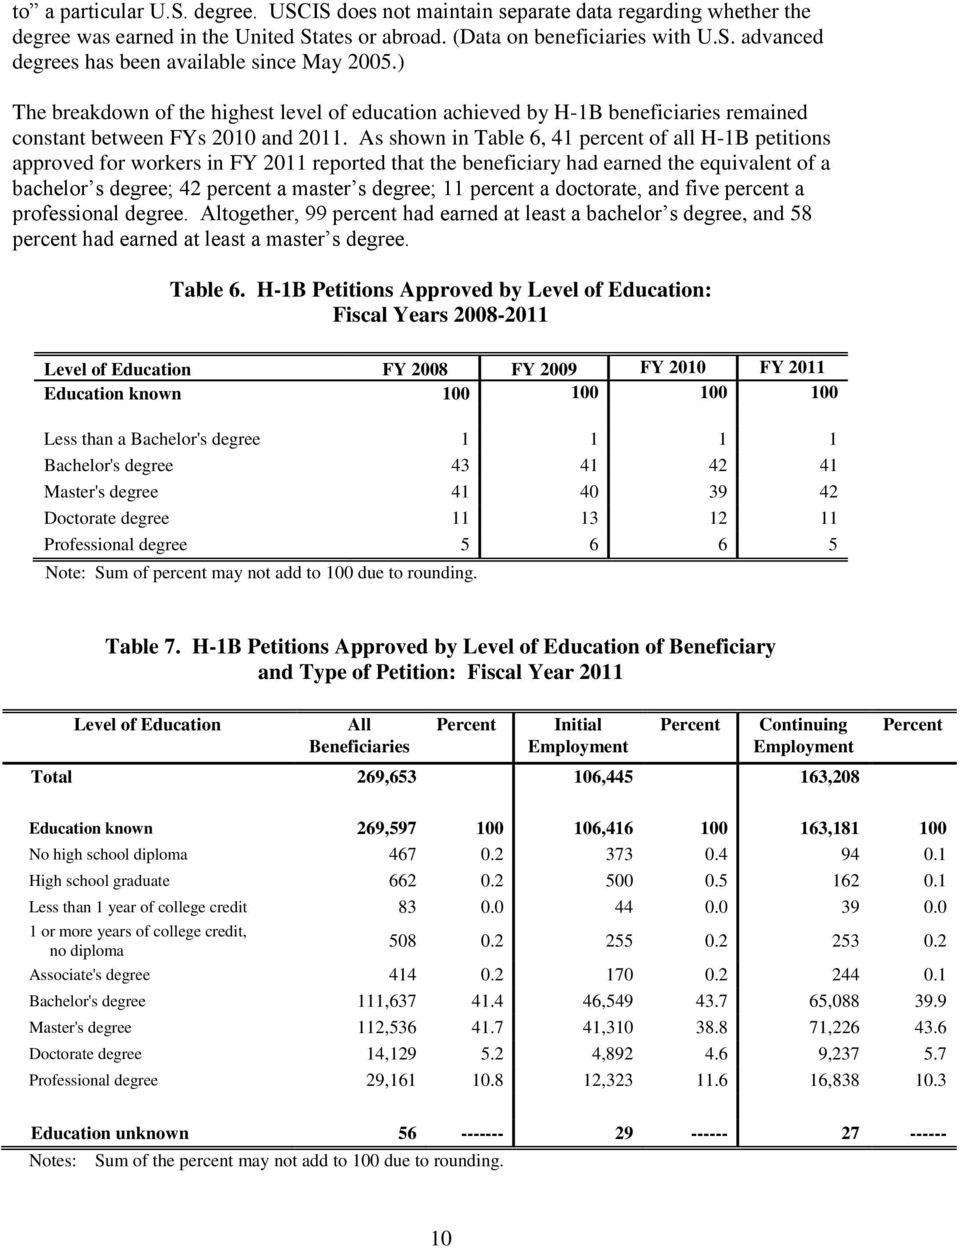 As shown in Table 6, 41 percent of all H-1B petitions approved for workers in FY 2011 reported that the beneficiary had earned the equivalent of a bachelor s degree; 42 percent a master s degree; 11